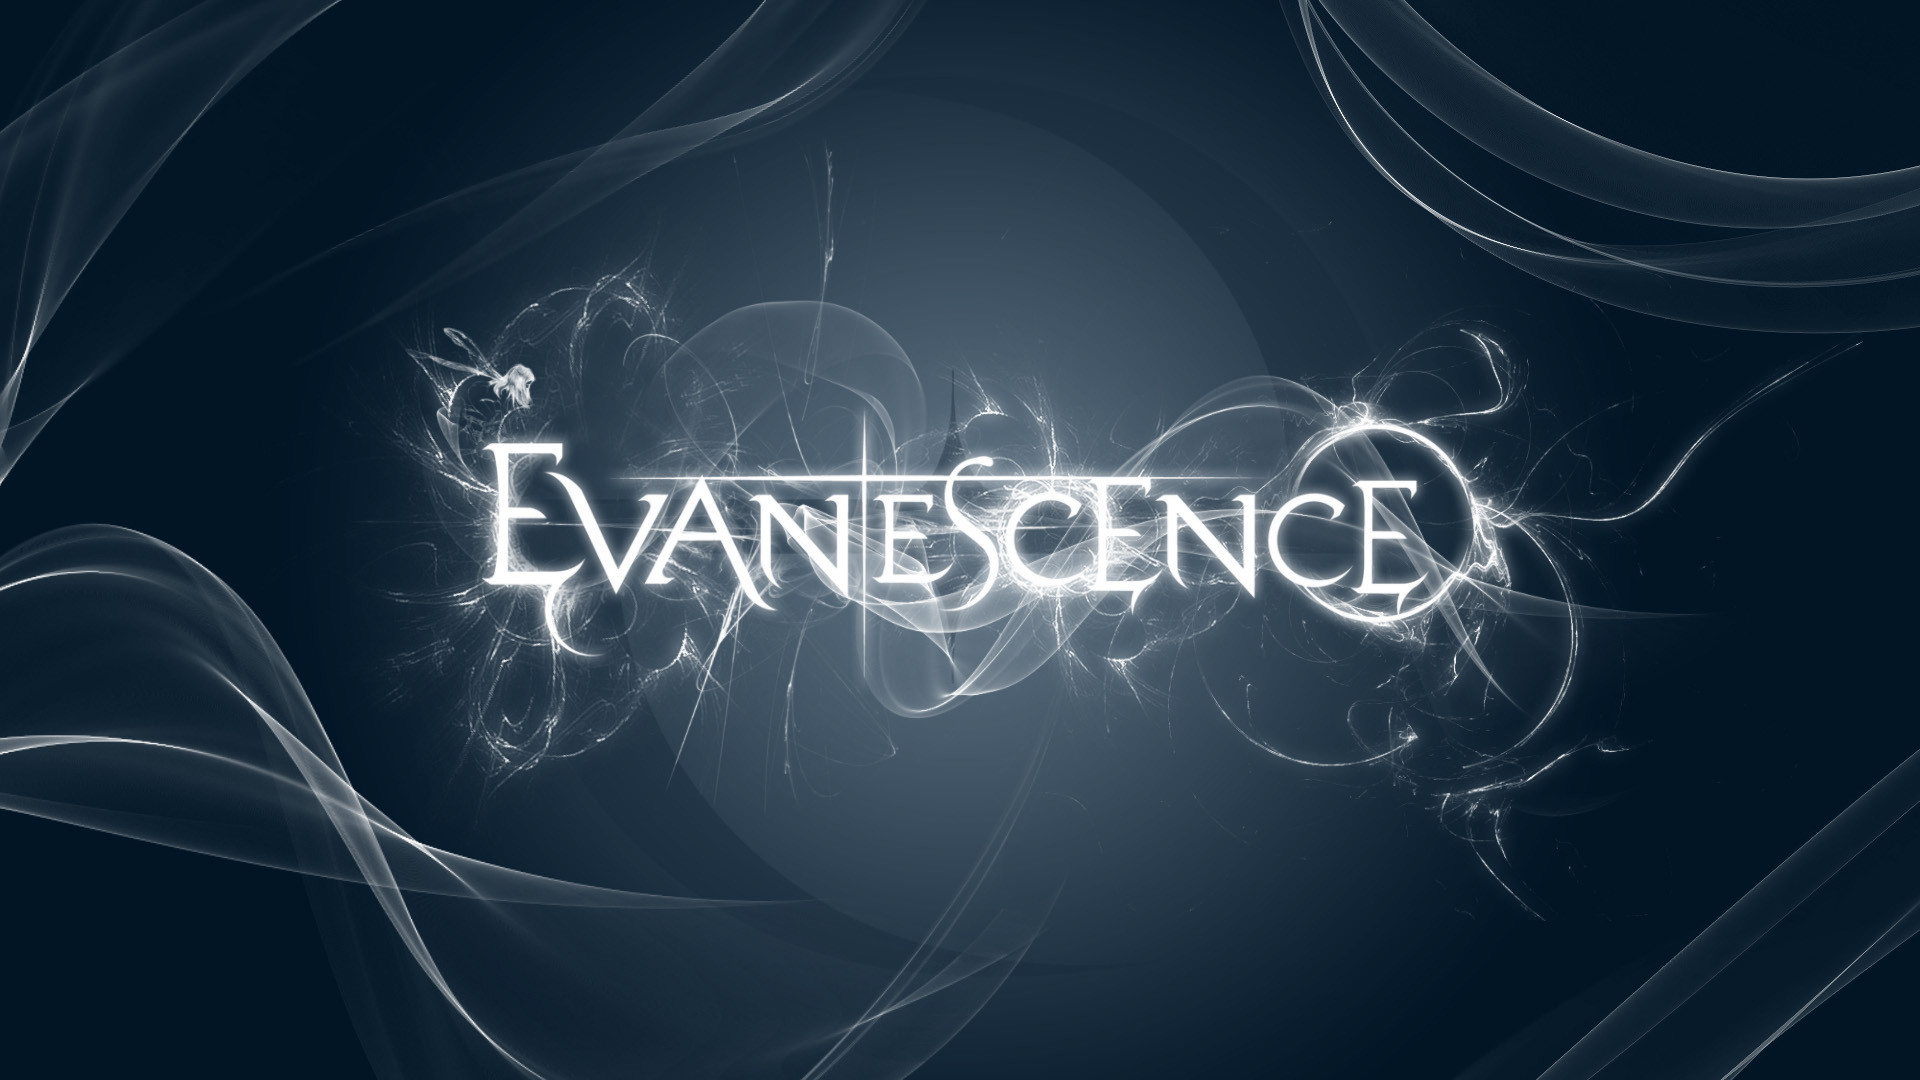 Group Evanescence